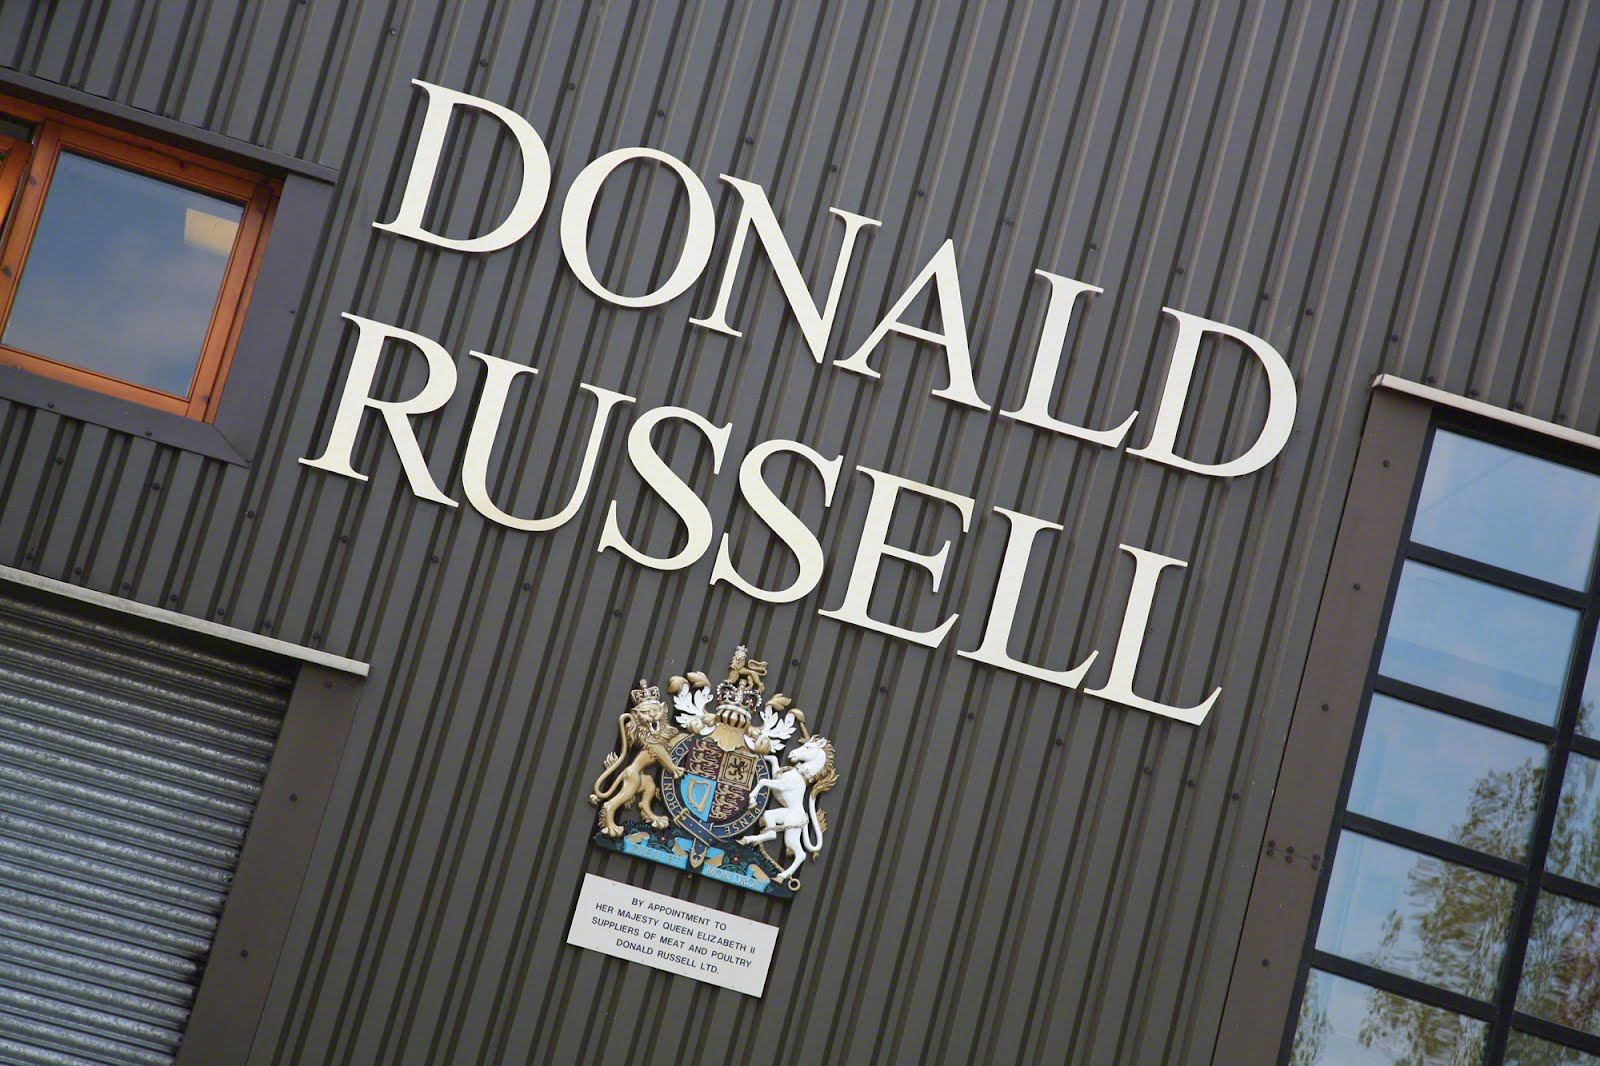 Donald russell chicken recipes